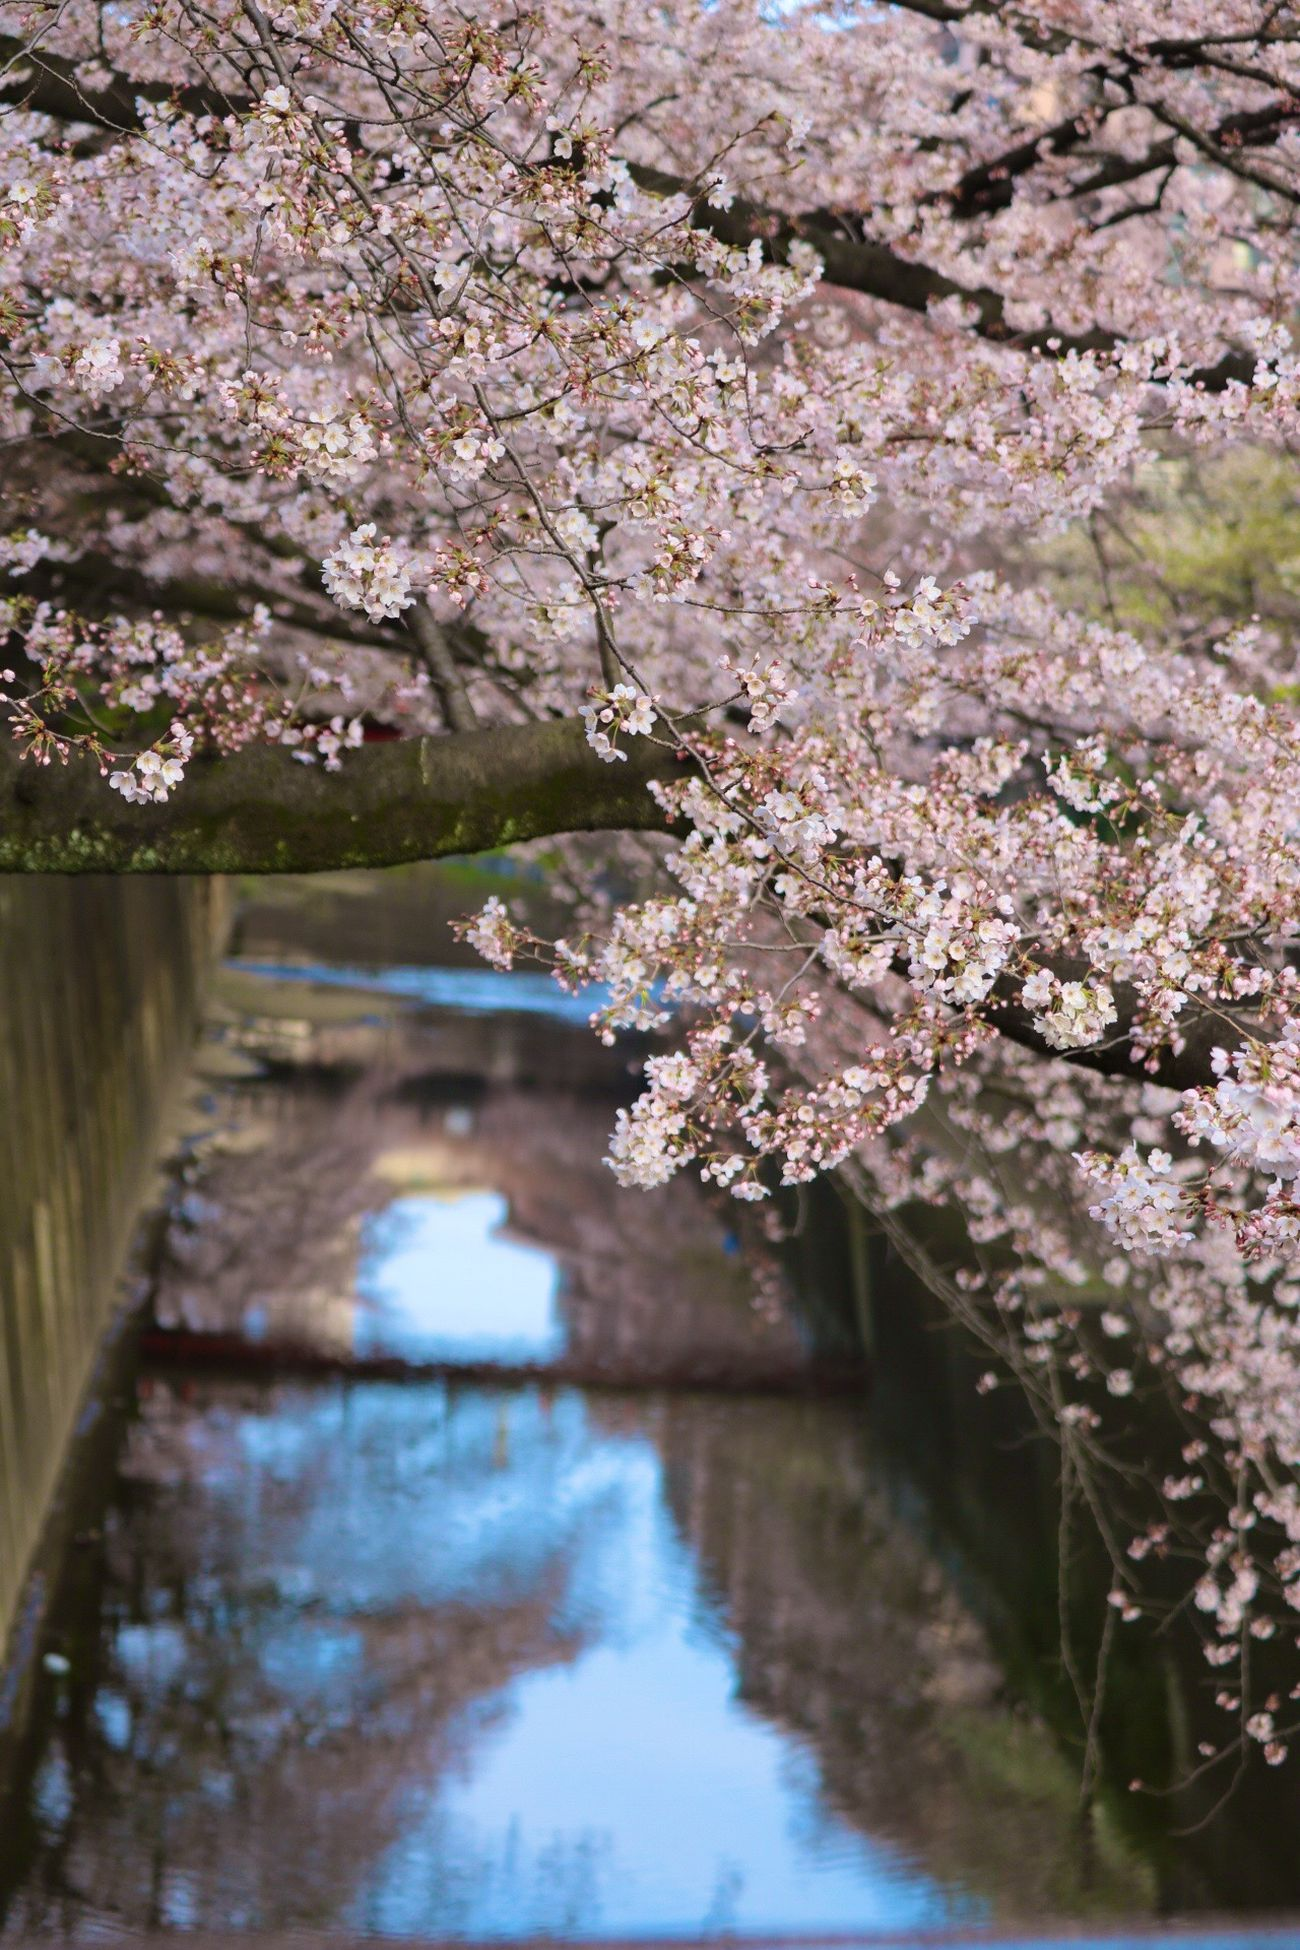 Flower Free Open Edit 満開 OpenEdit Canon Open Edit For Everyone サクラ 桜 Tokyo 開花 Open Canonphotography 春ですね